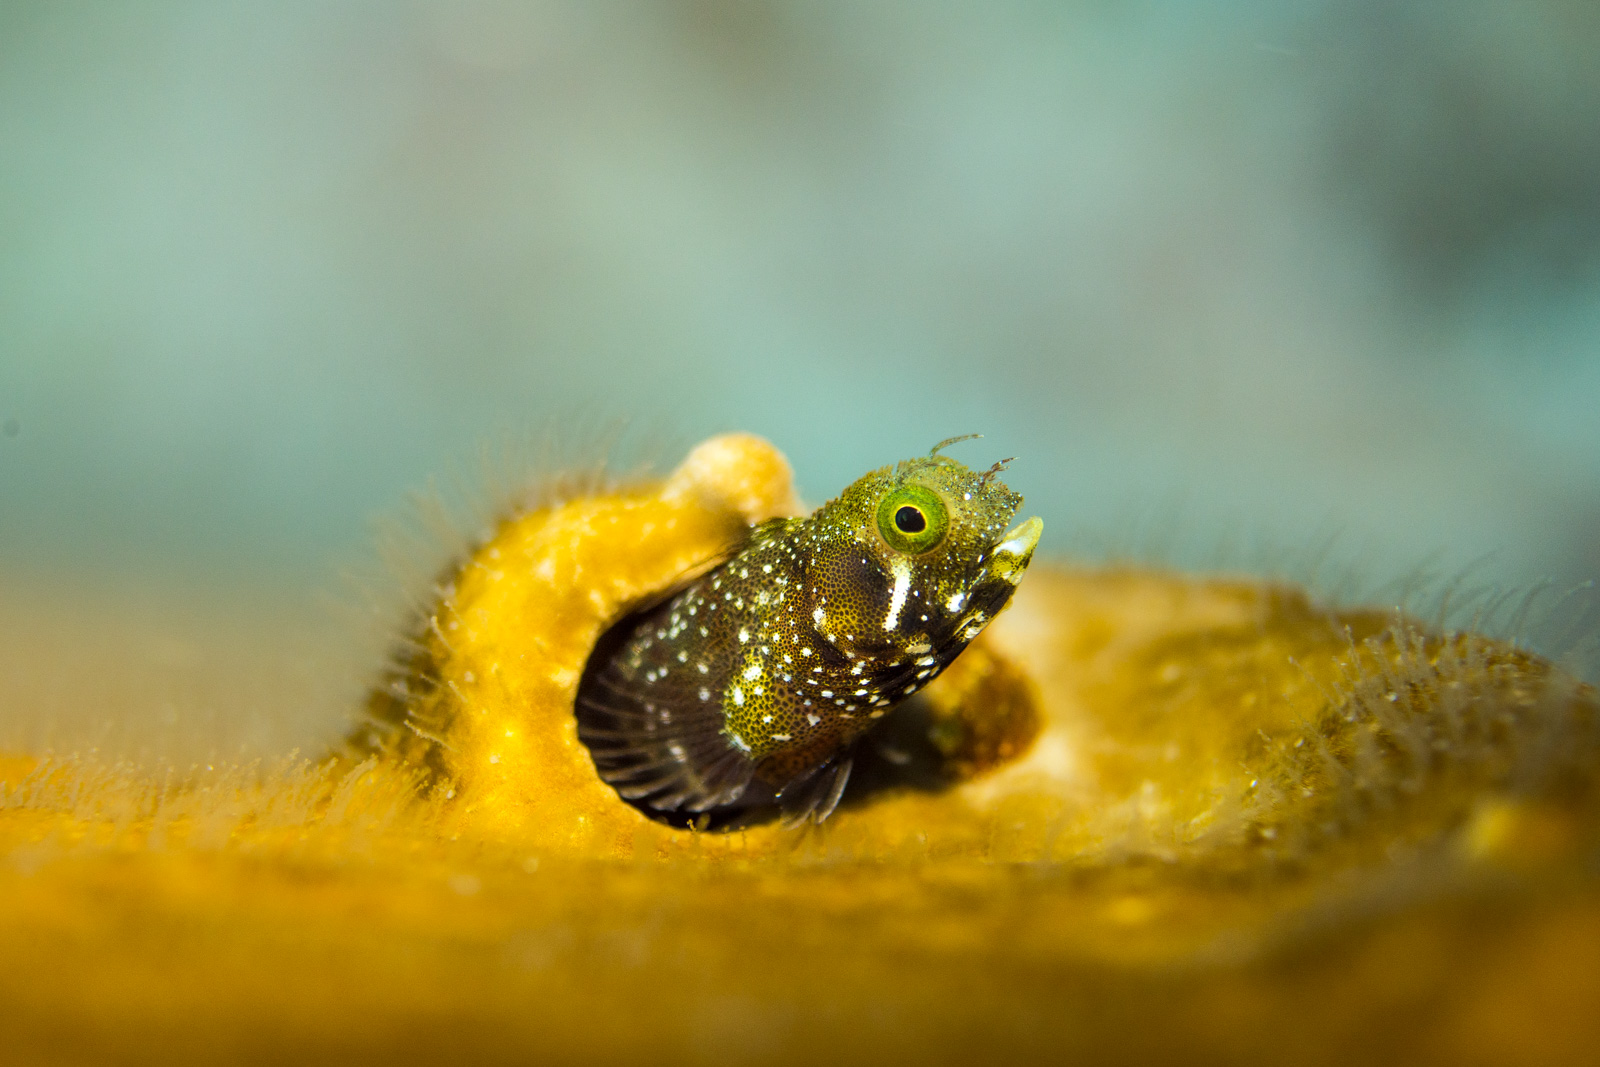 Blenny taken with a 60mm Macro lens, under a spot light from an I-Torch Venom 35s.